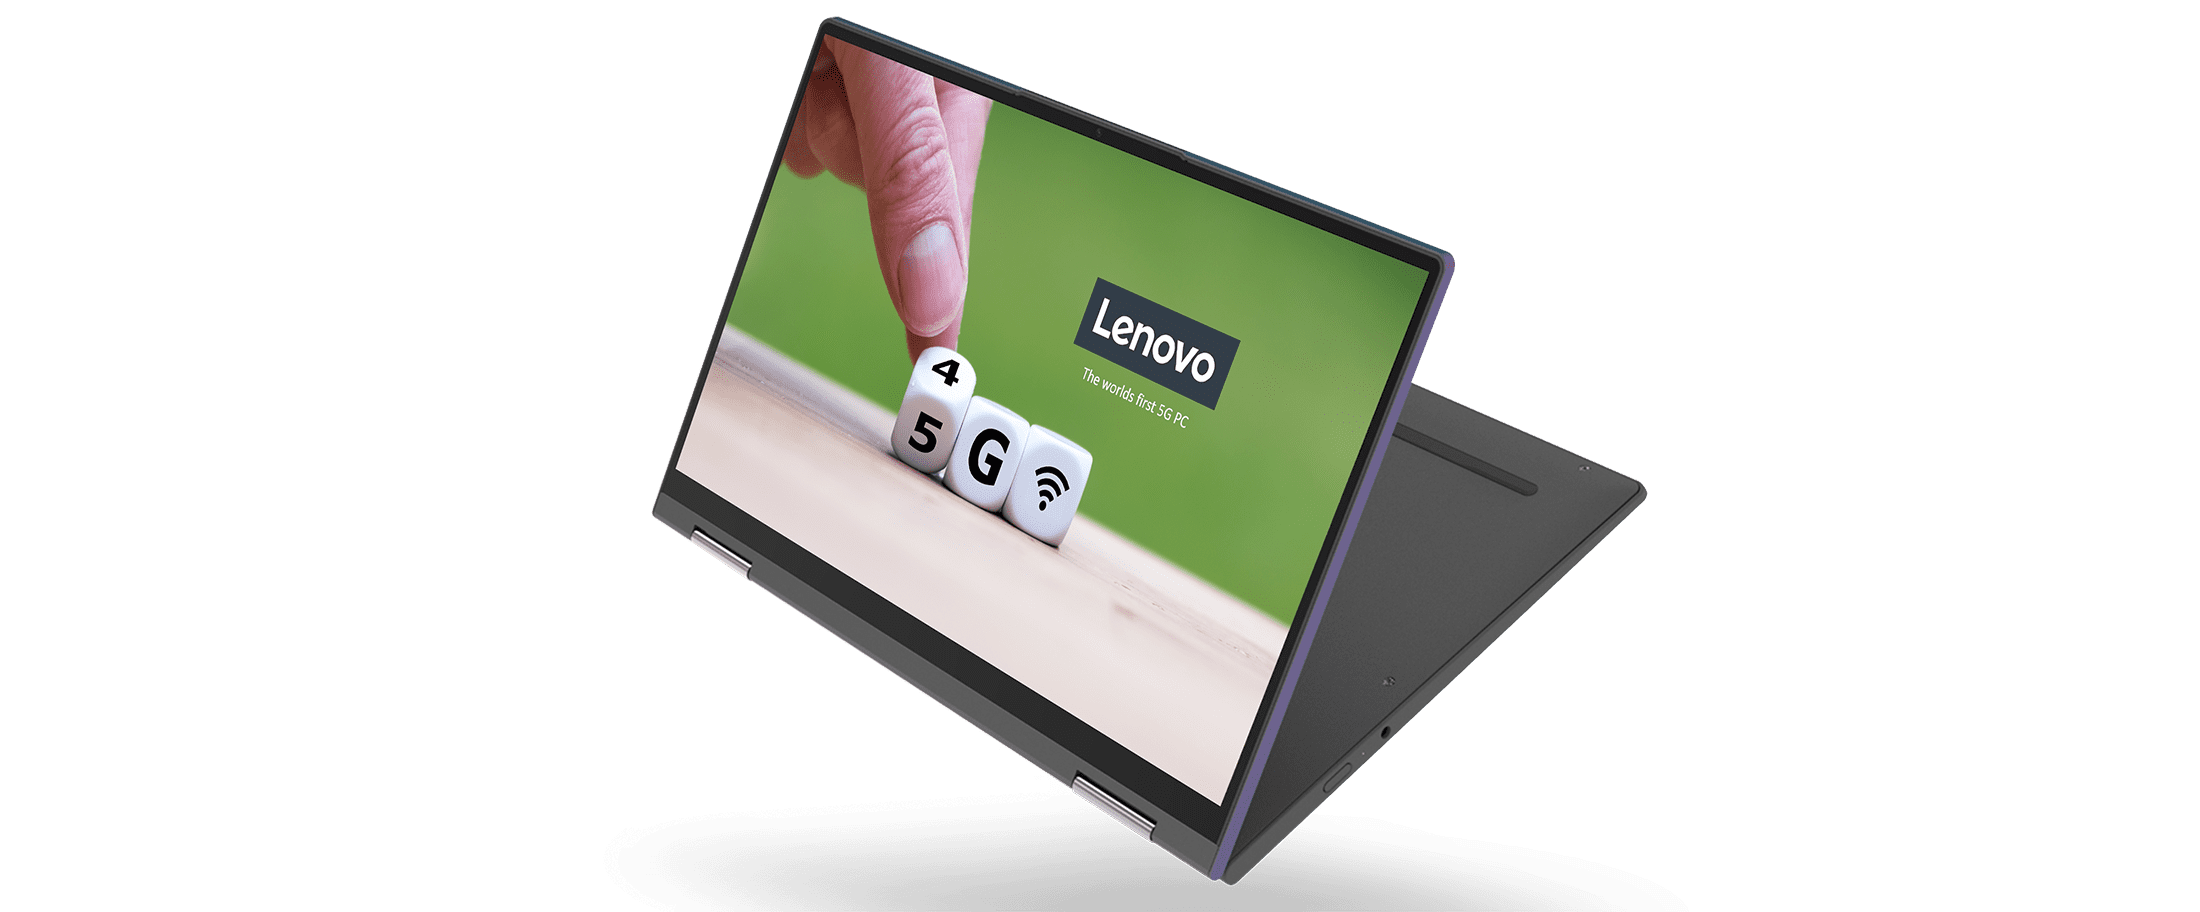 Lenovo Project Limitless 5G